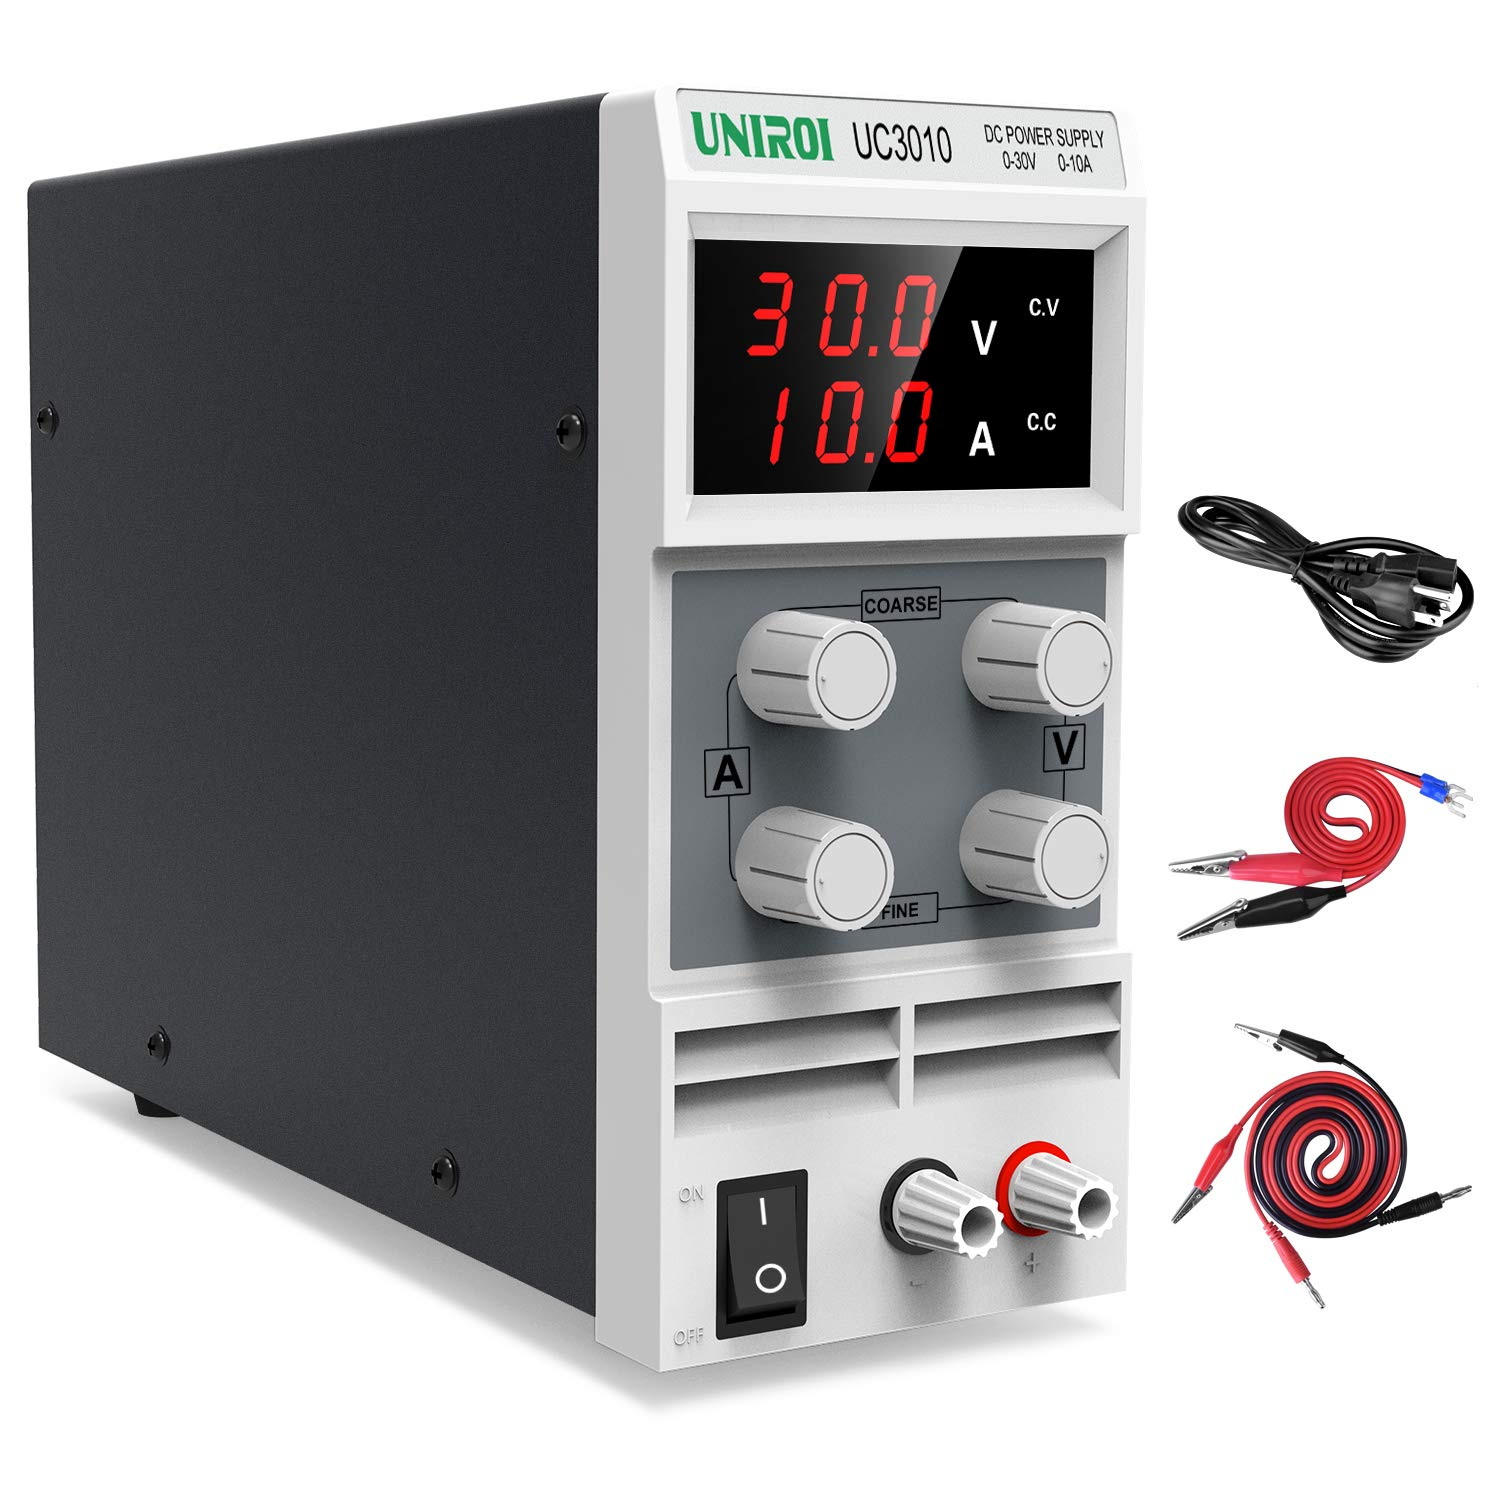 UNIROI DC Power Supply Variable, 0-30V/0-10A DC Bench Power Supply with 3-Digit LED Display, Alligator Clip Leads, Input Power Cord UC3010